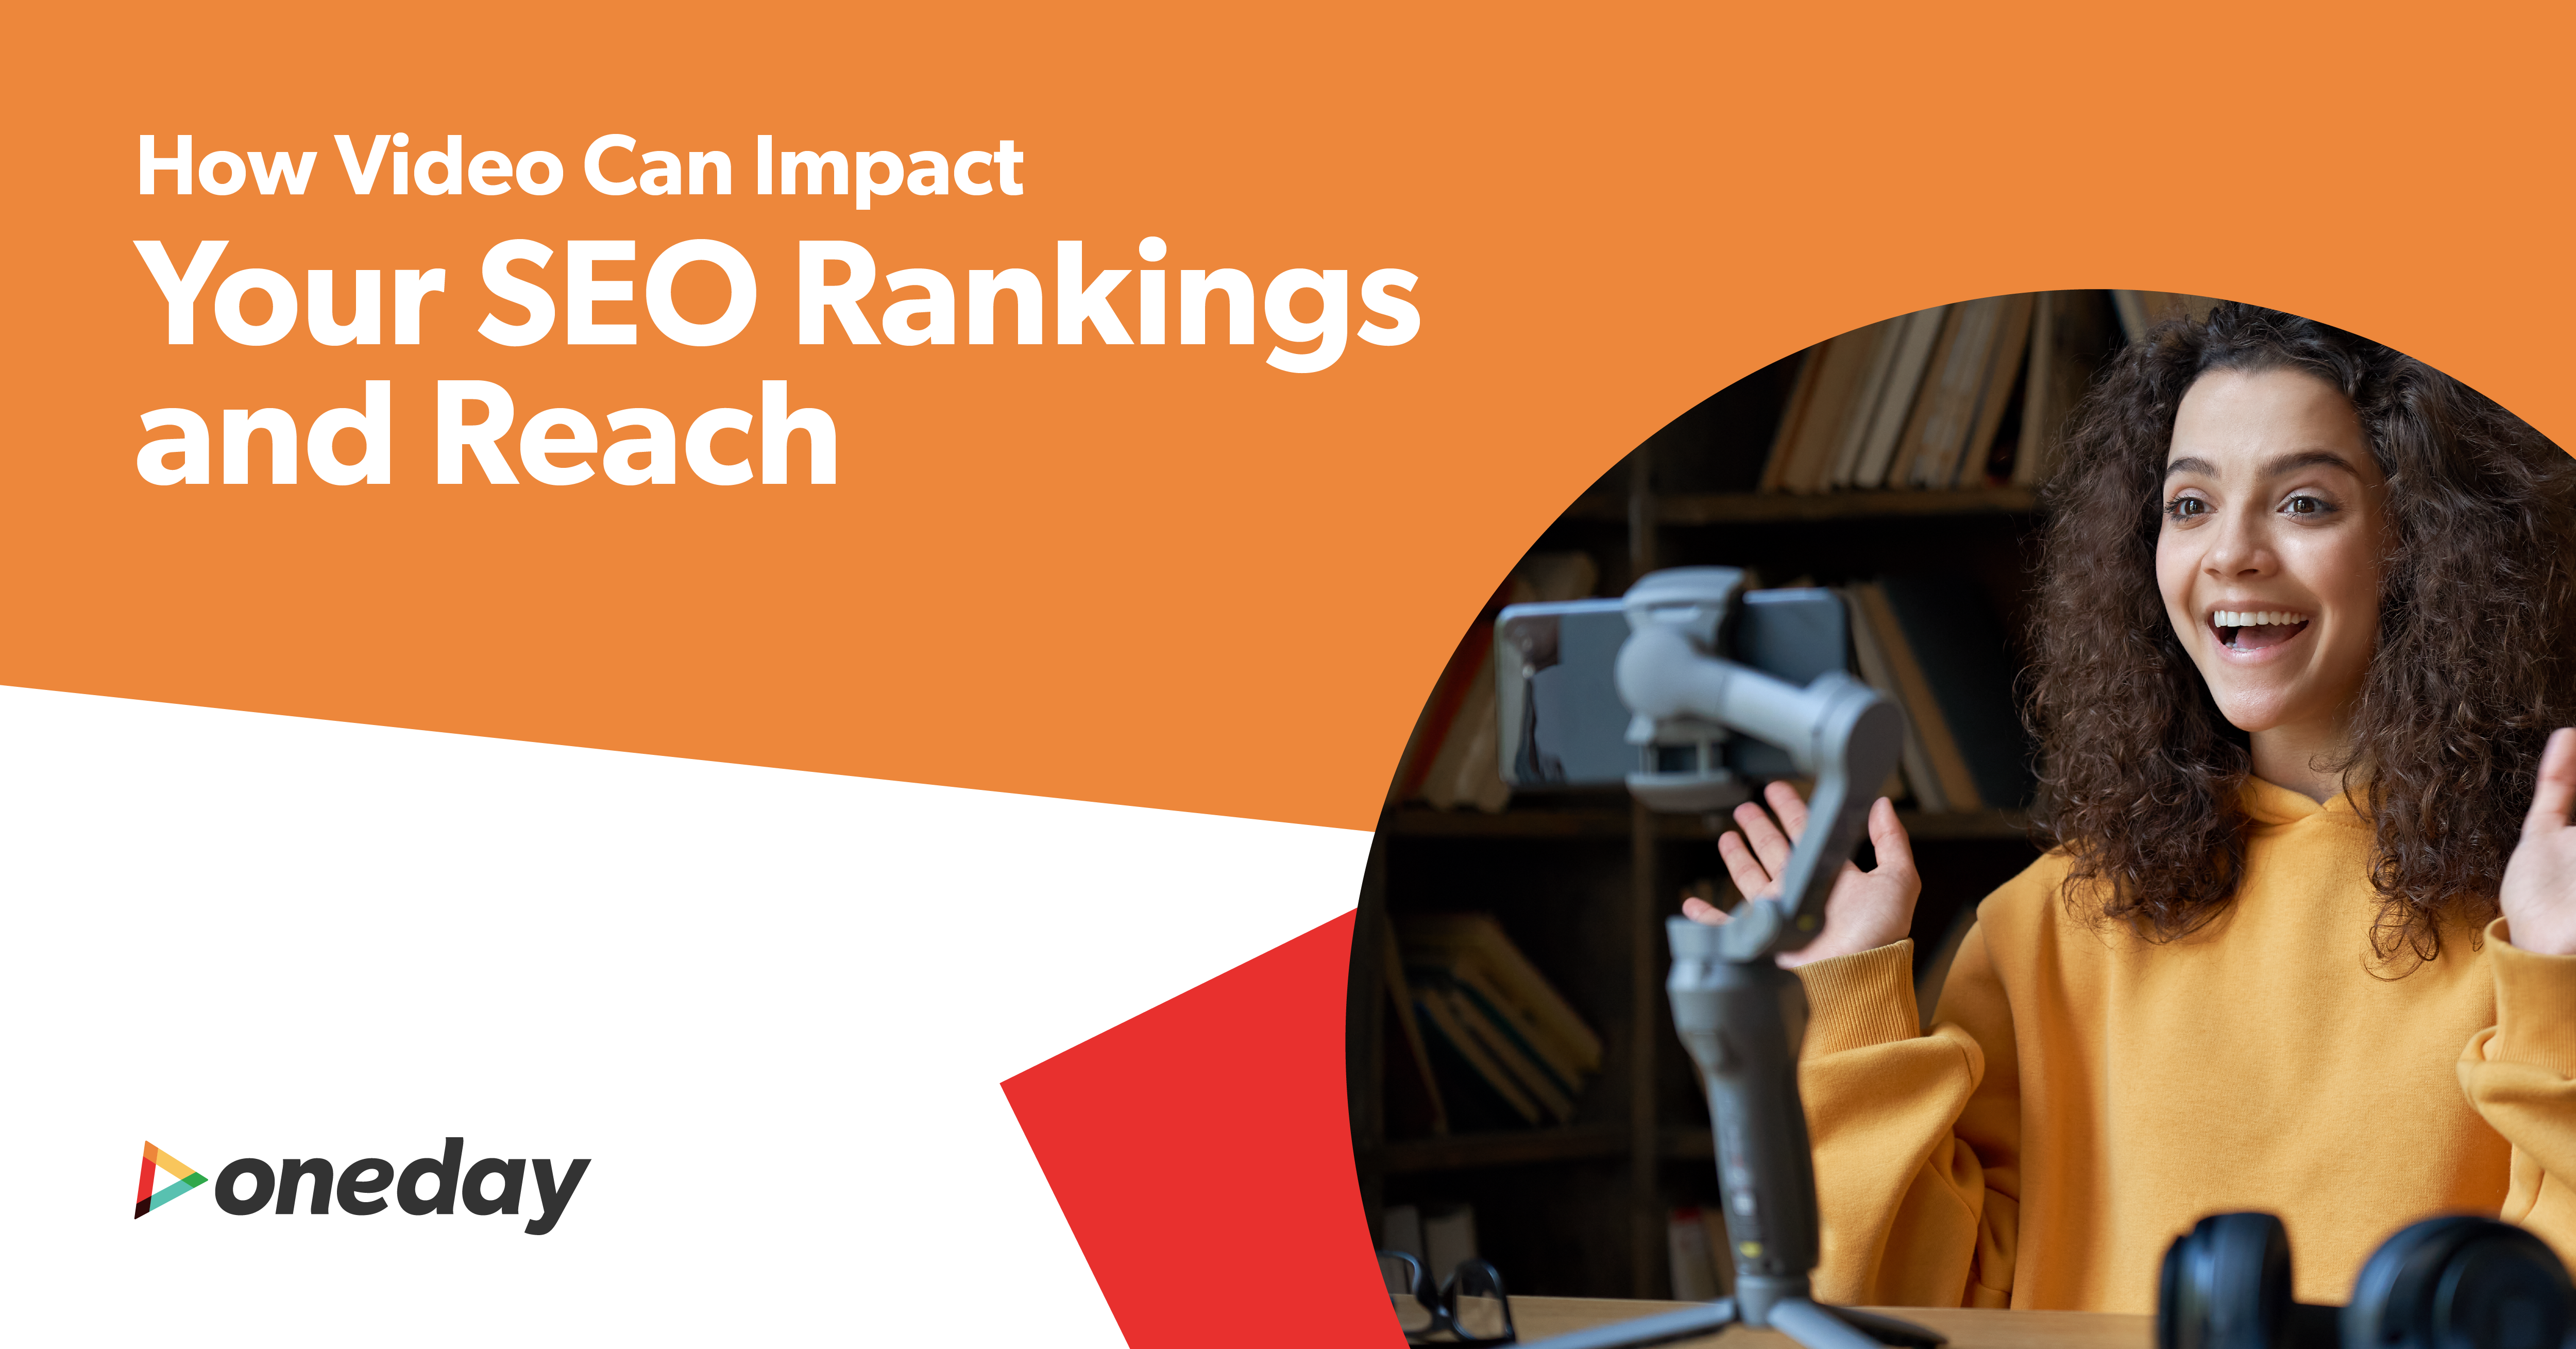 Insights and best practices from OneDay on using video content to drive SEO, expand your reach, and propel your entire marketing strategy forward.